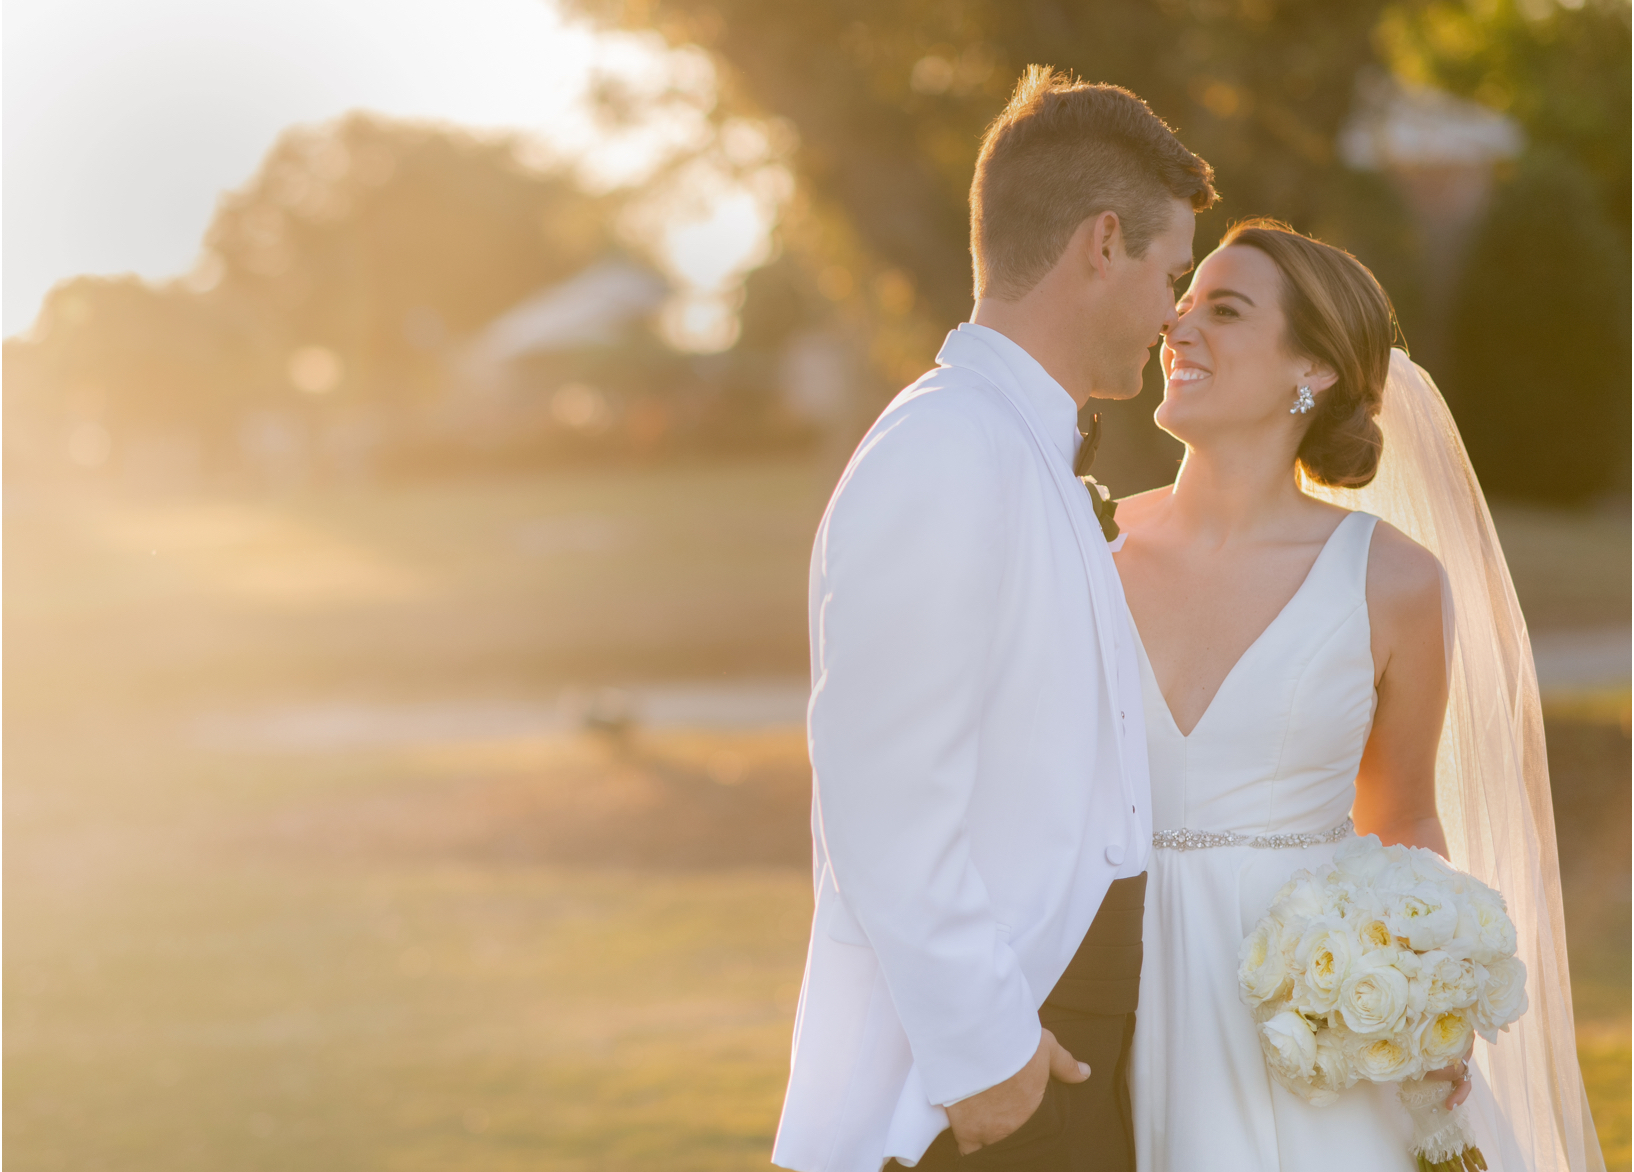 Marriage - Aislinn Kate Wedding Photography - Pensacola, Florida